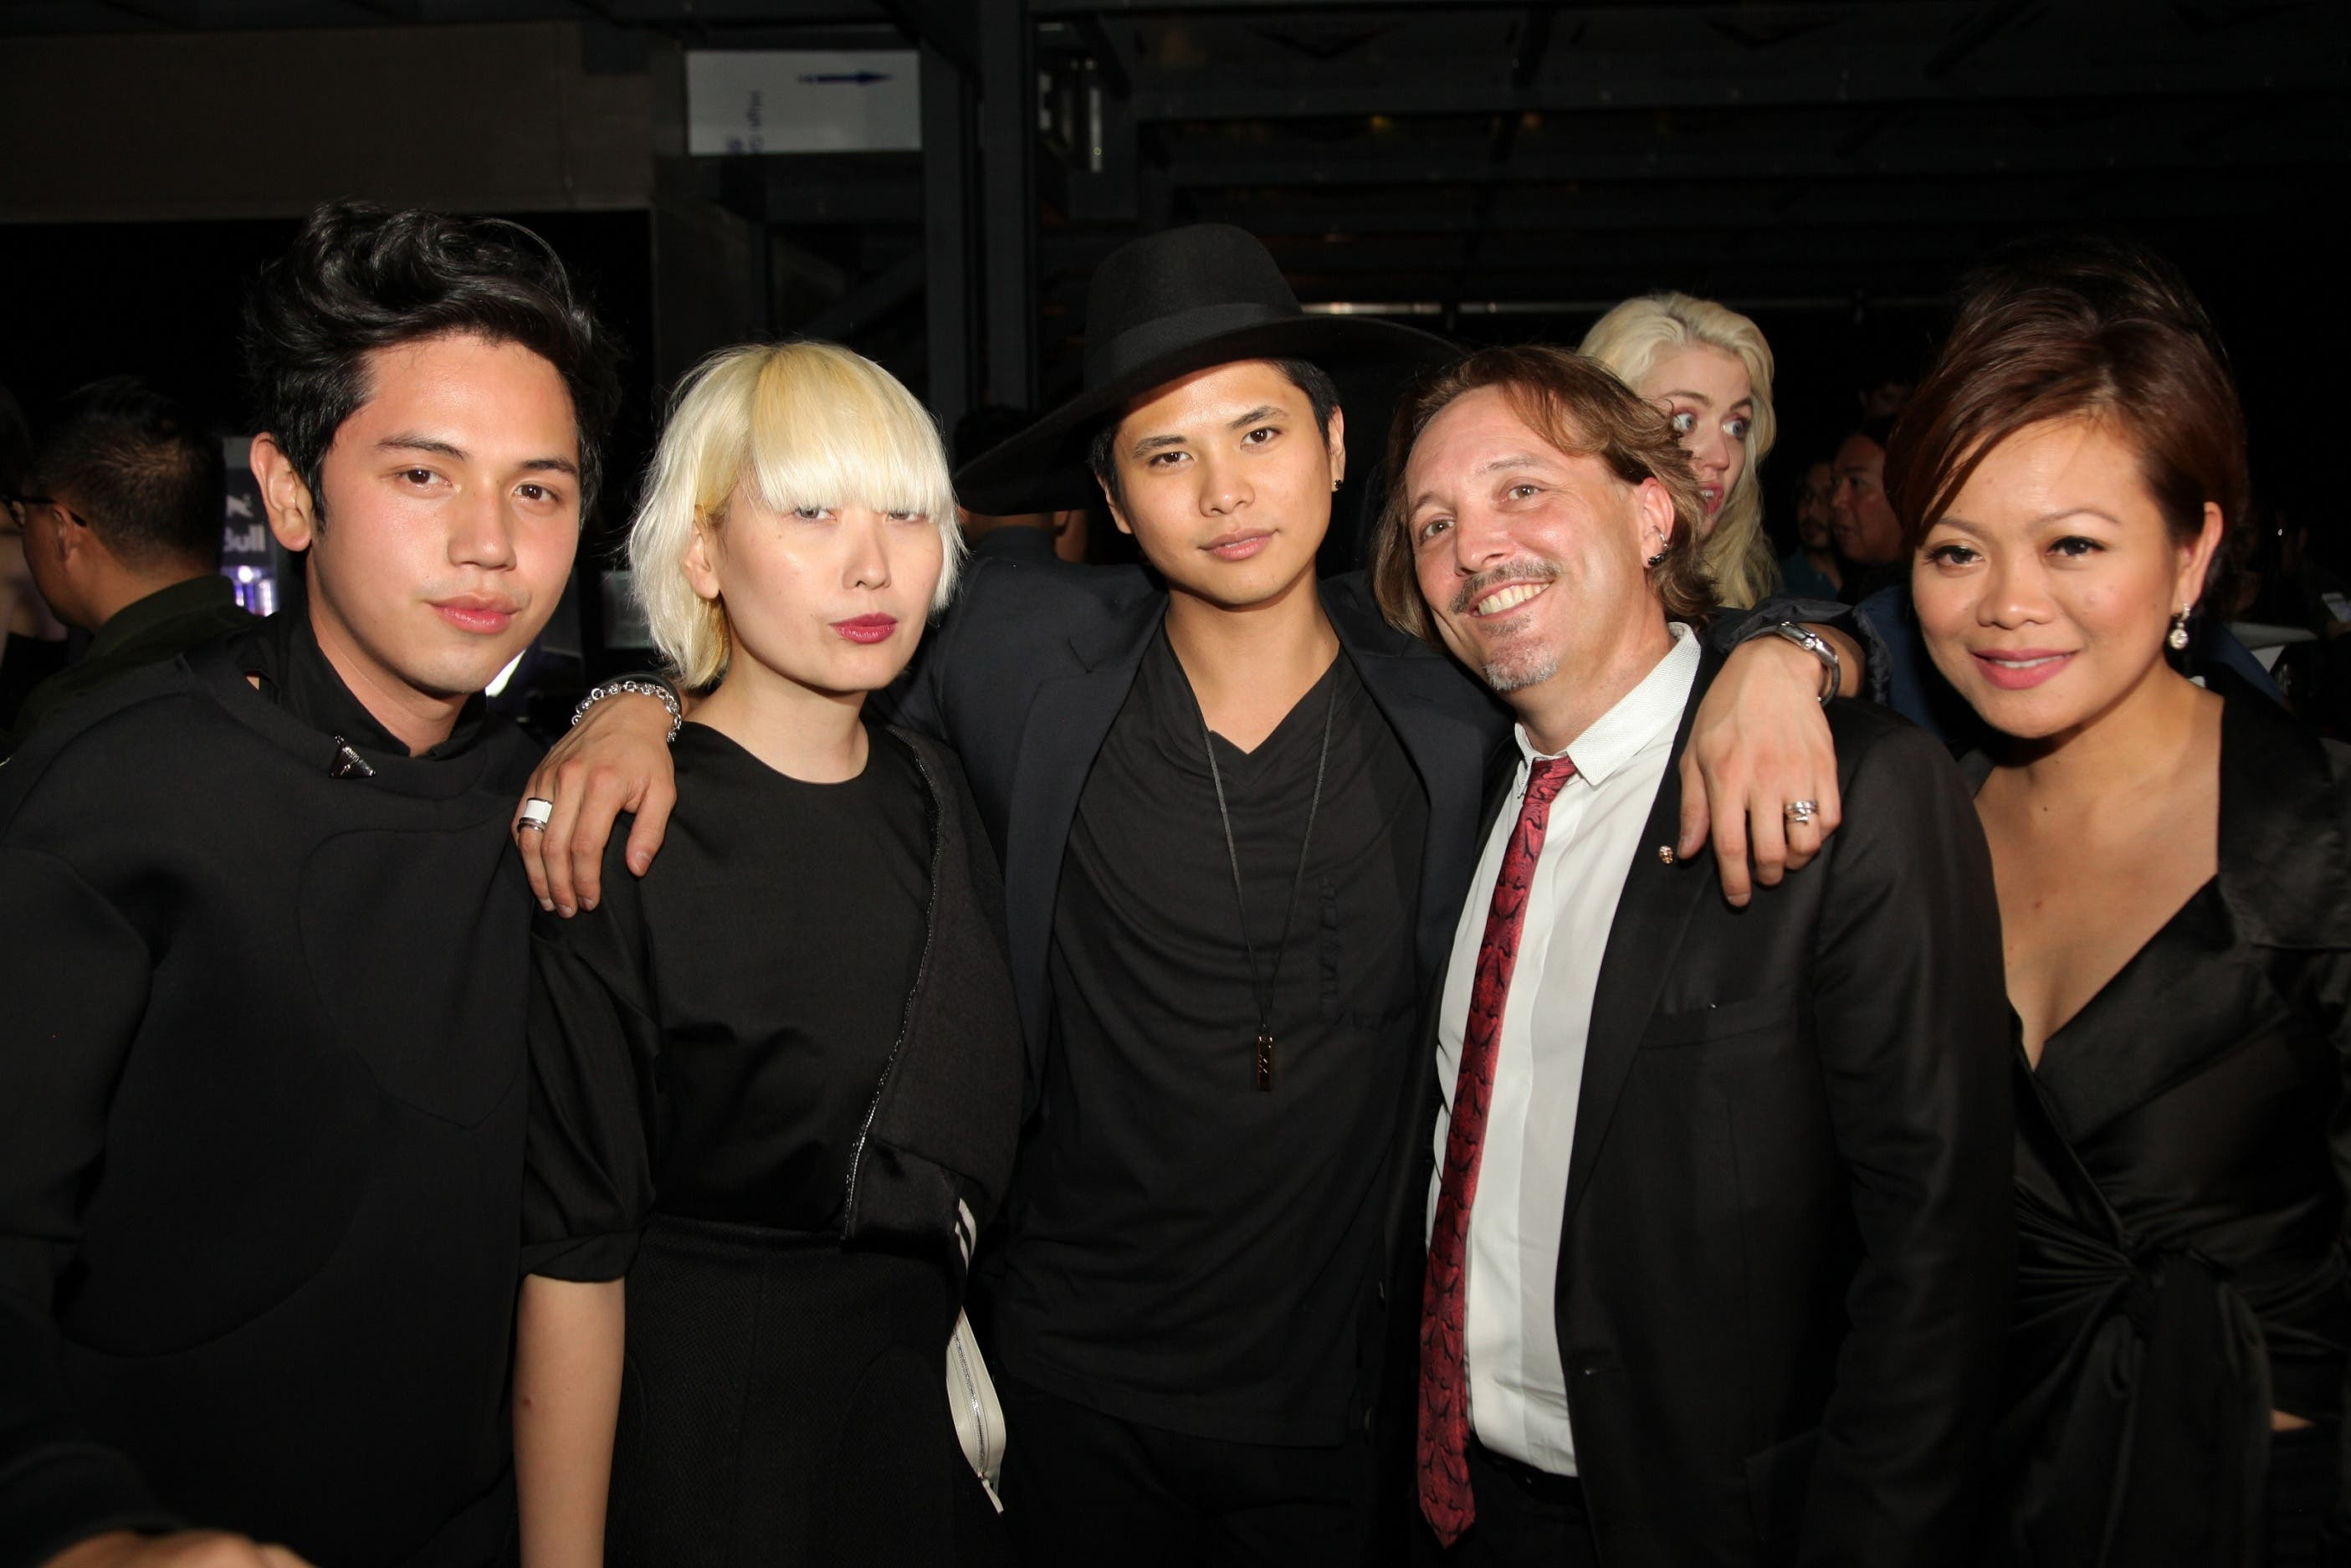 At East Jed Root Pioneer Talents Photographer BJ Pascual And Stylist Daryl Chang With George Inaki, Jed Root And Managing Director Au Mauricio